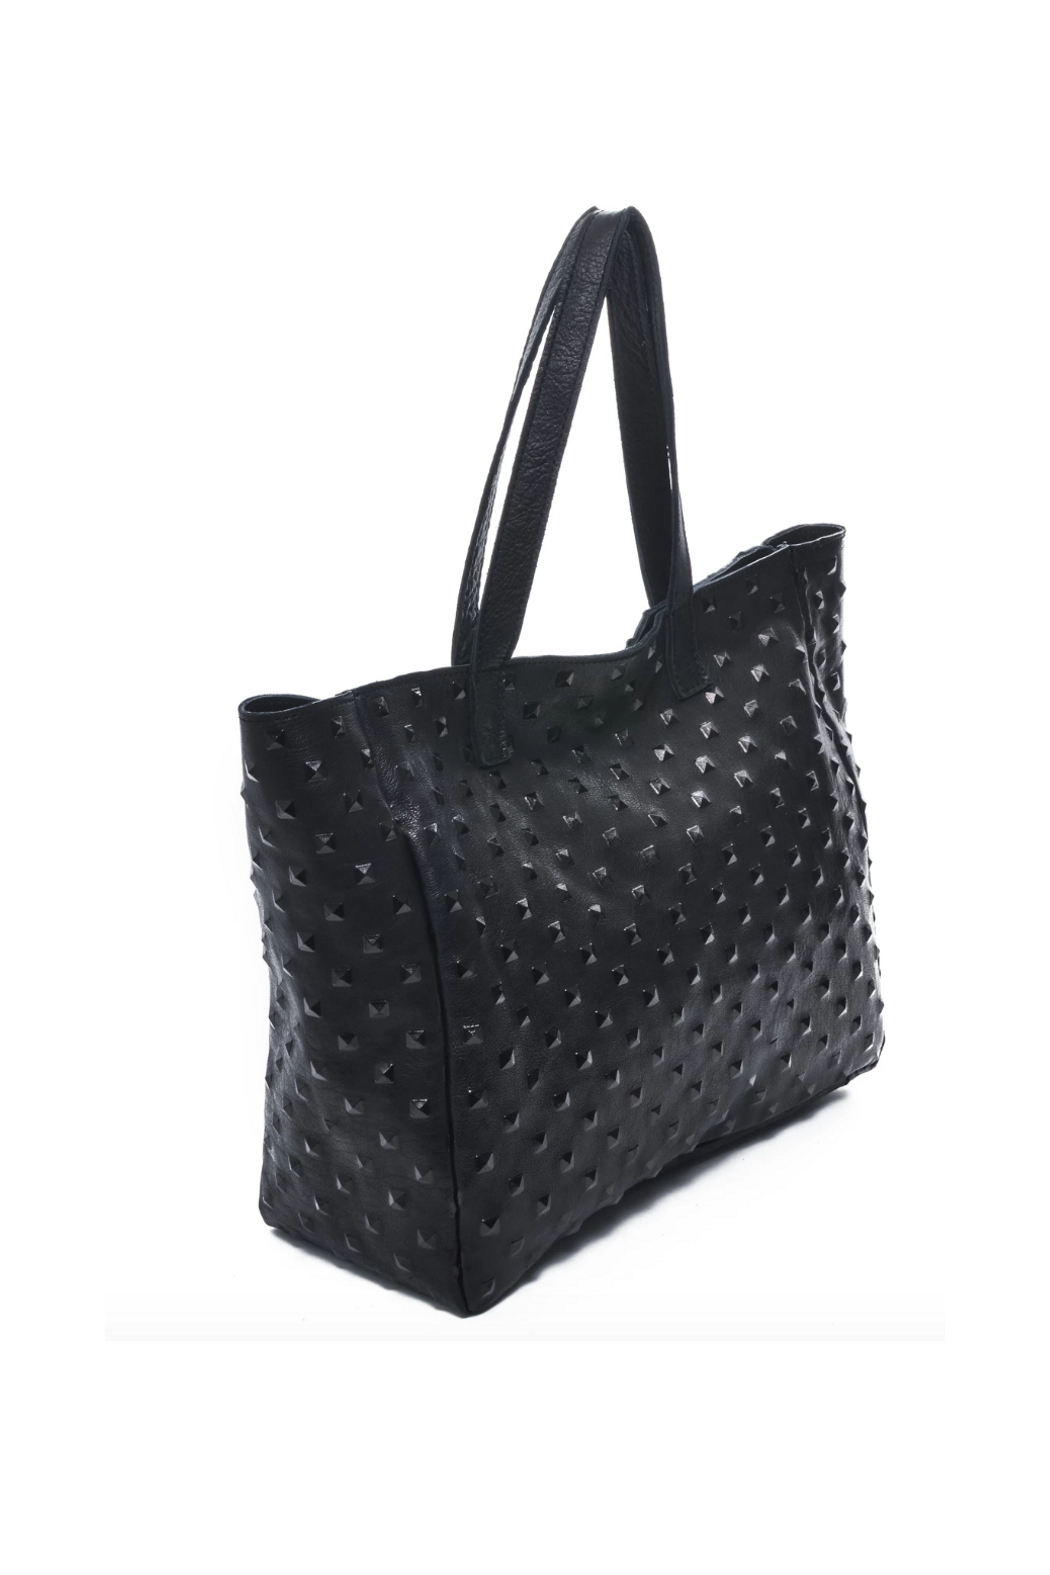 Carla Mancini Amber Tote Black Studded - Front Full Image